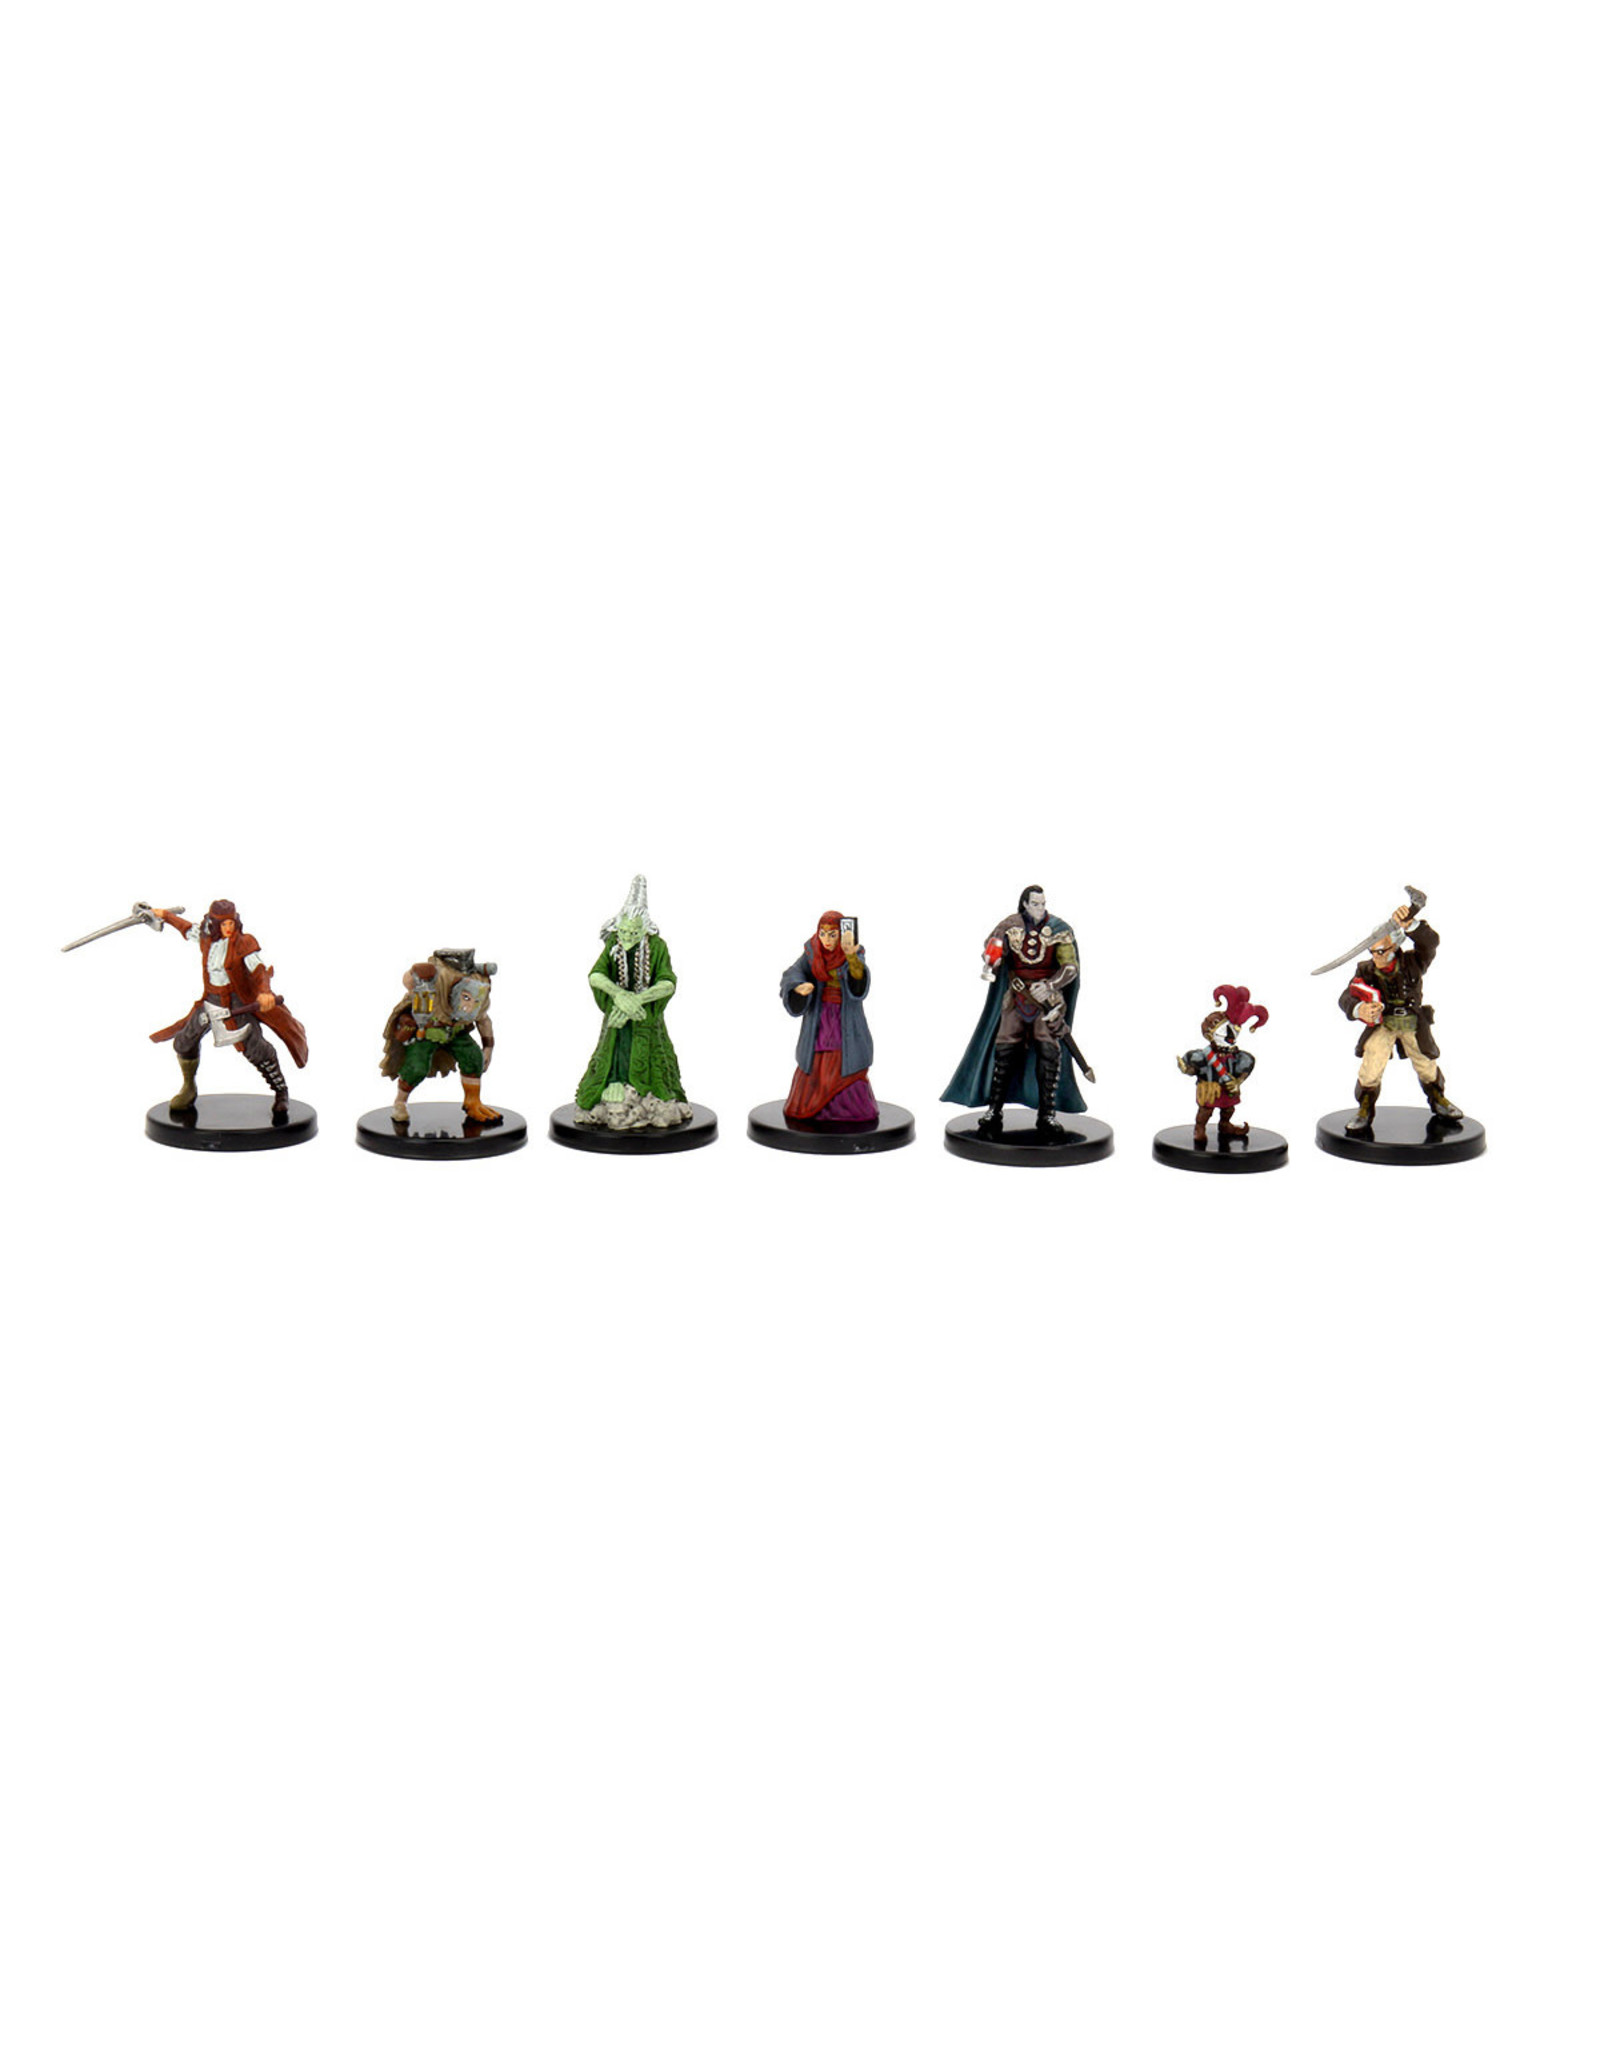 WizKids Dungeons & Dragons Fantasy Miniatures: Icons of the Realms - Curse of Strahd Legends of Barovia Premium Box Set